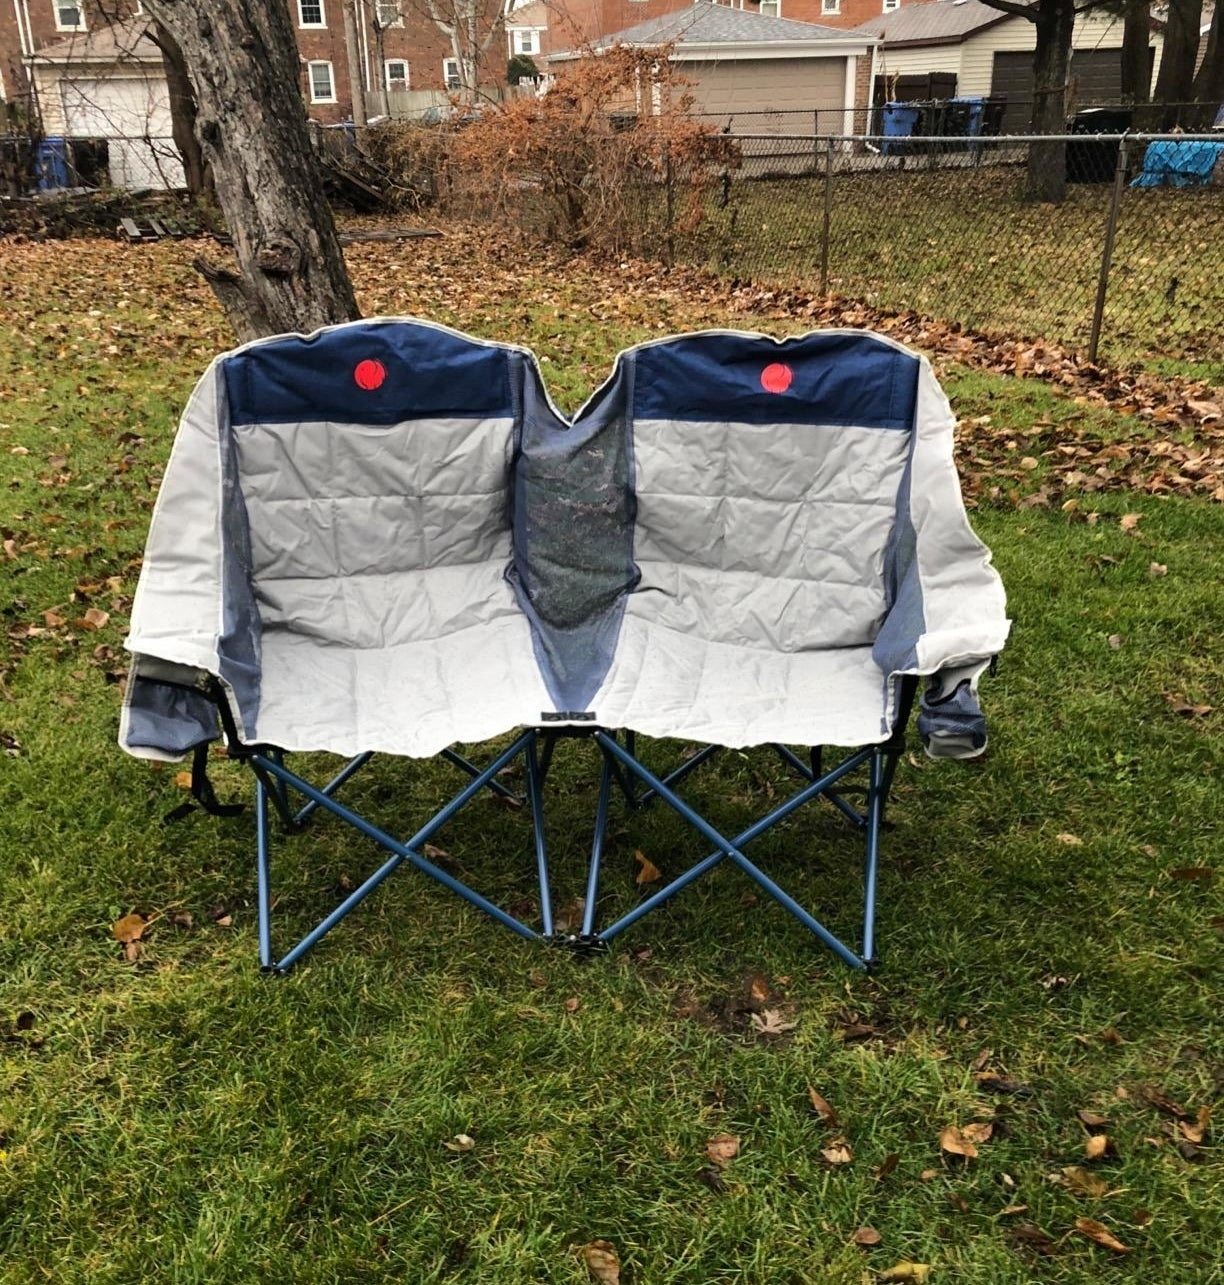 camping chair that looks like two camping chairs melded together with no middle arm rests